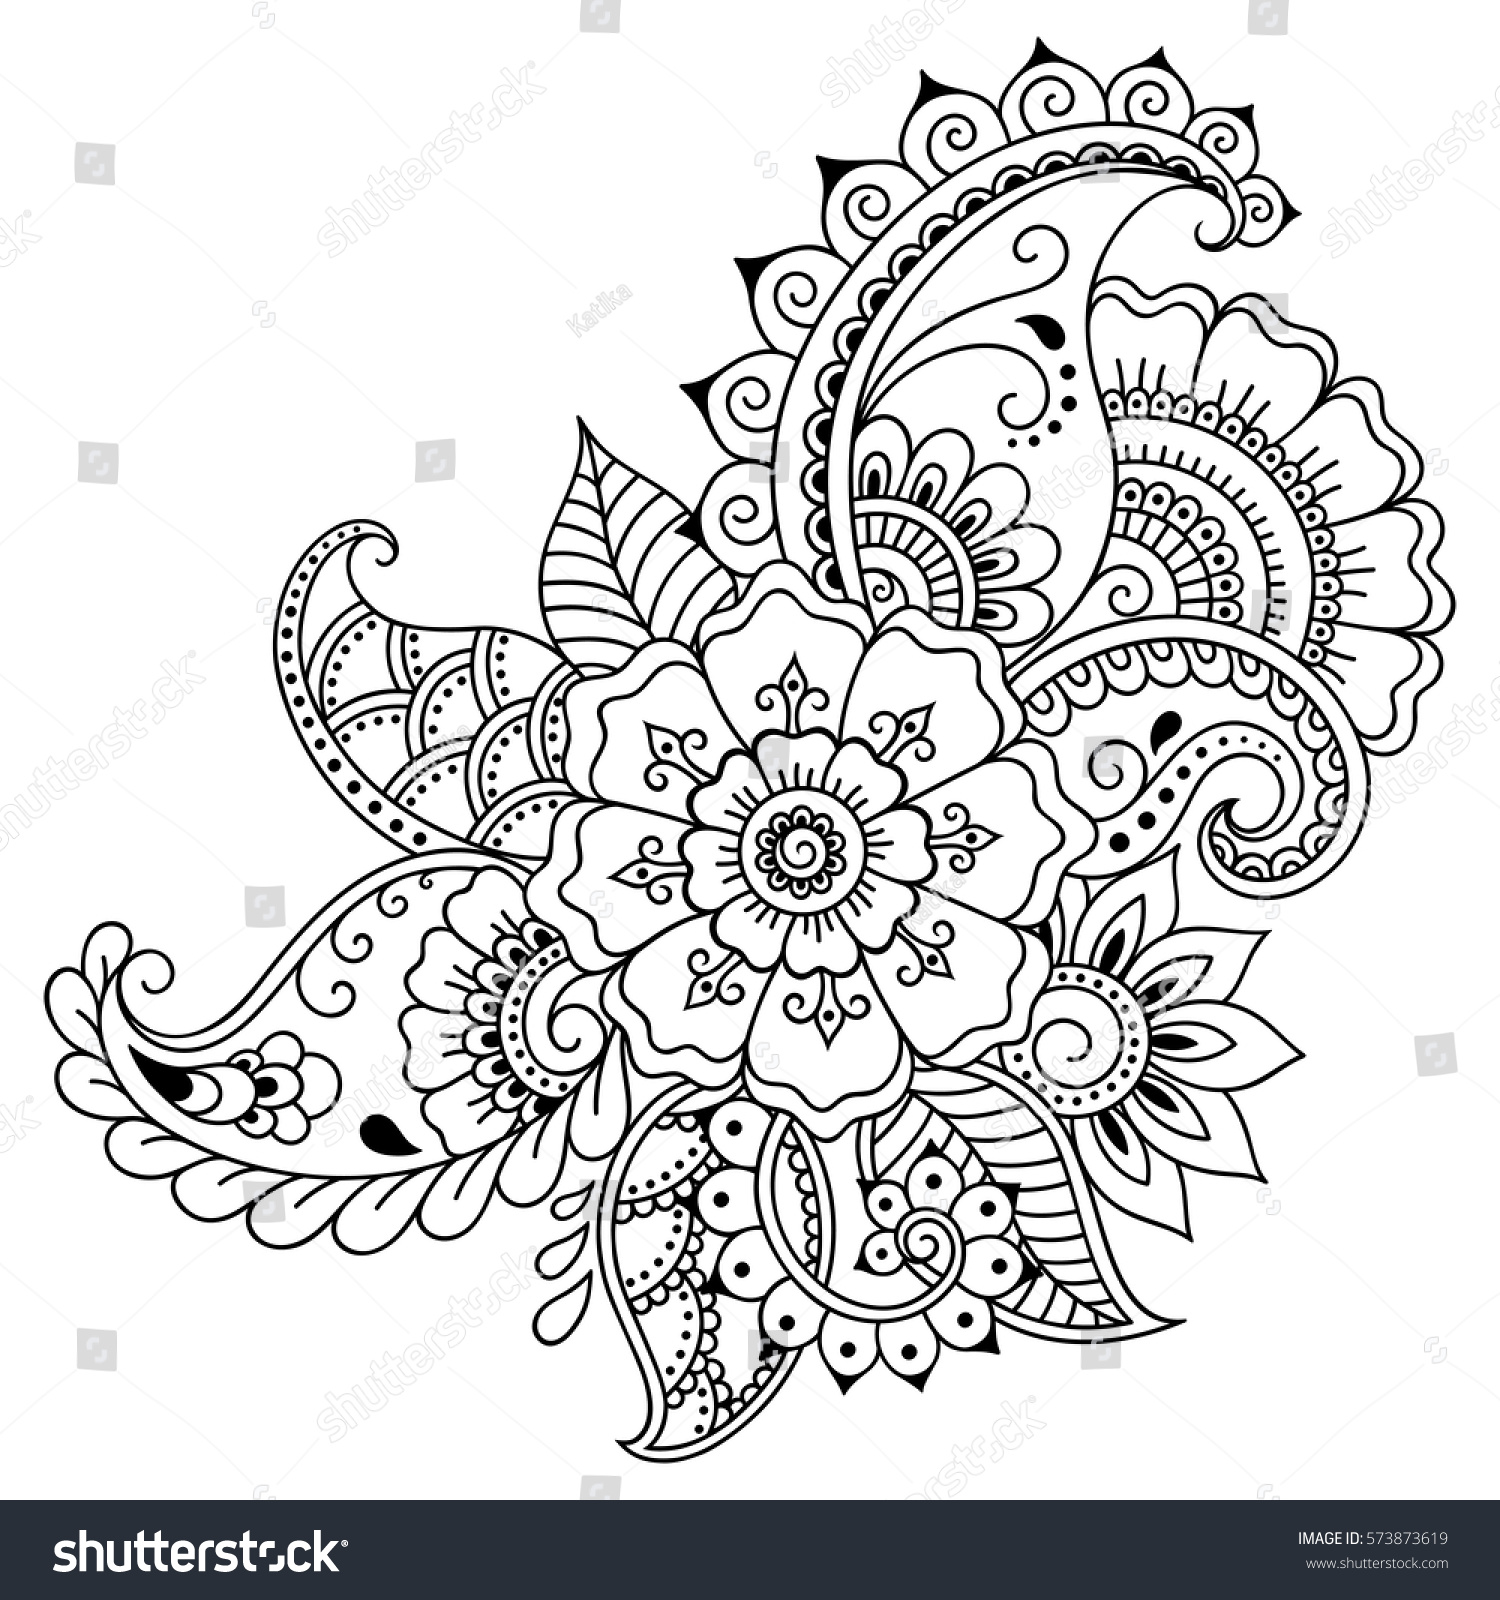 Henna Tattoo Flower Template In Indian Style: Henna Tattoo Flower Template Mehndi Style Stock Vector